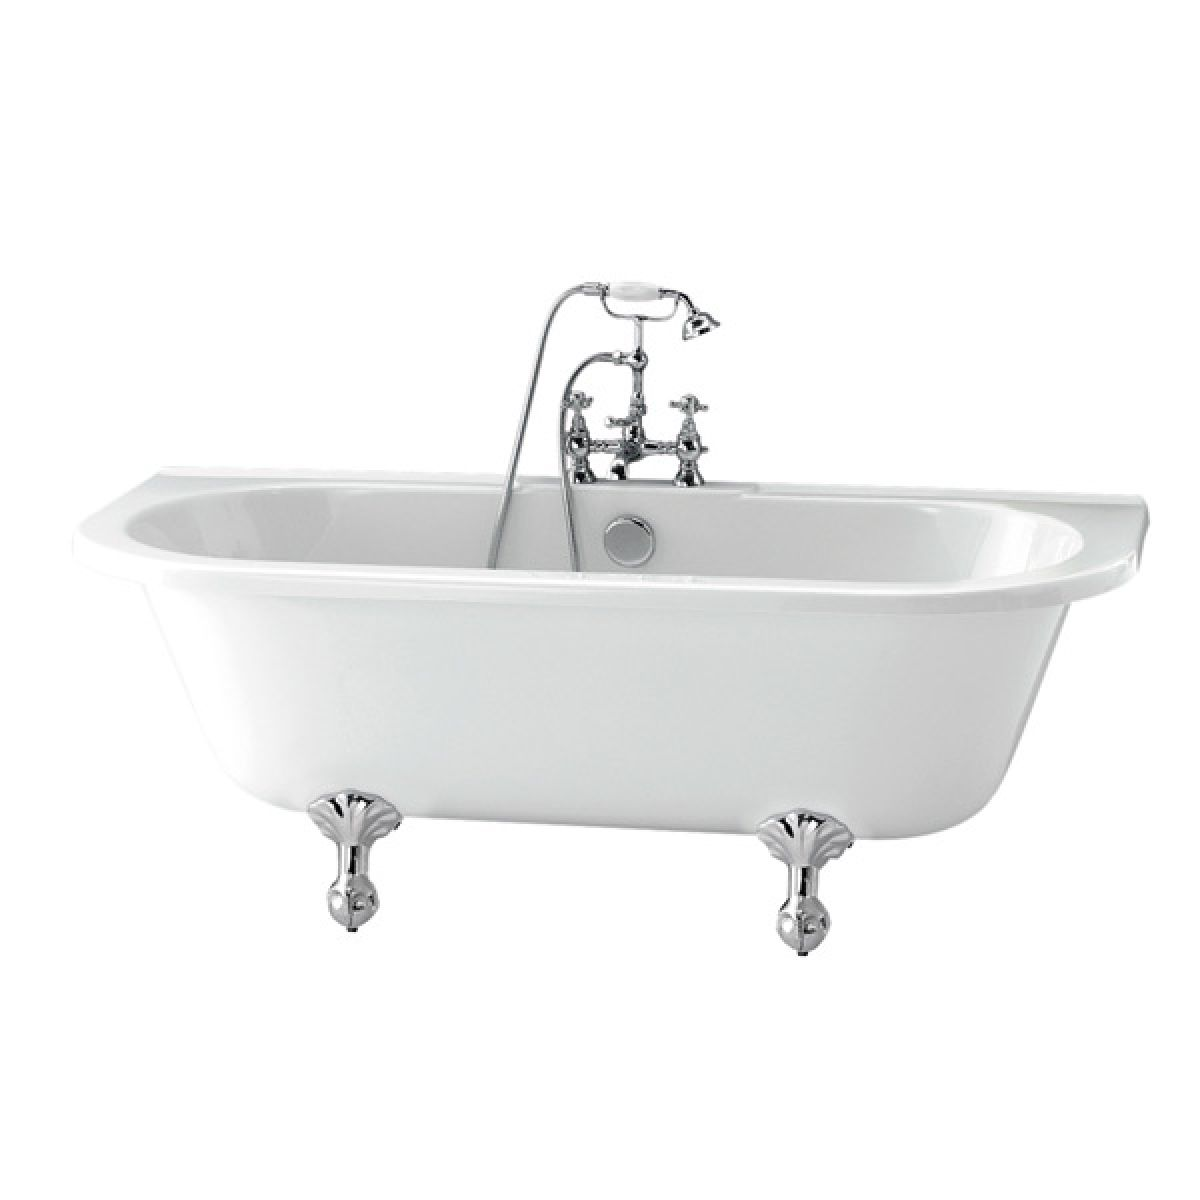 Moods Finchley Freestanding Back To Wall Bath 1680mm x 740mm 0 Tap Hole